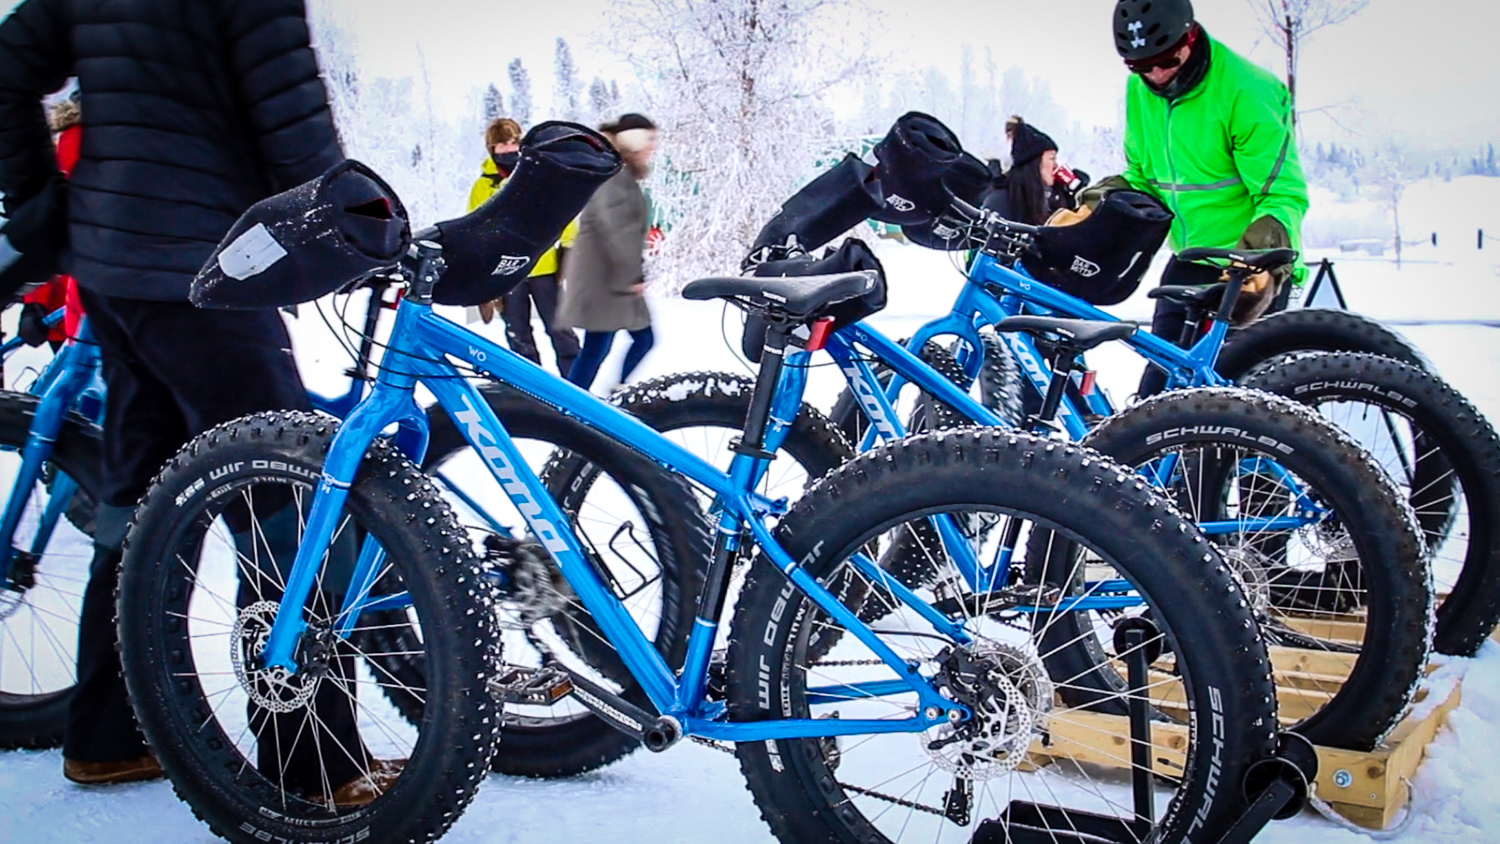 Fat bikes on display at Yellowknife's Somba K'e Civic Plaza on World Snow Day in 2017